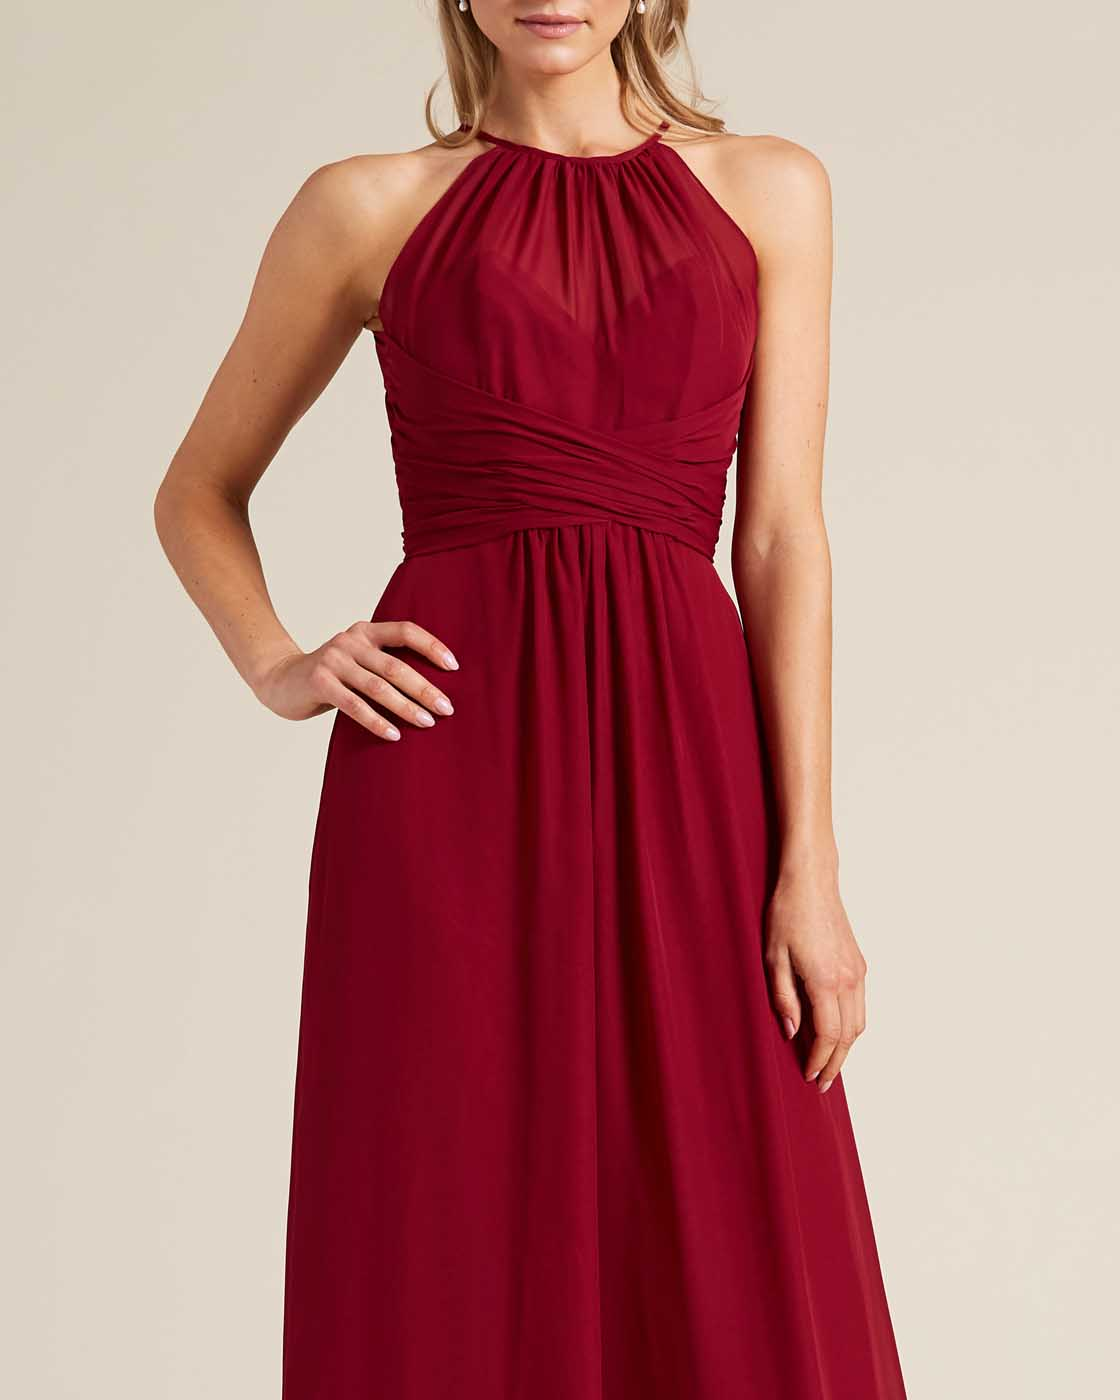 Burgundy Sleeveless Bow Detail Evening Gown - Detail